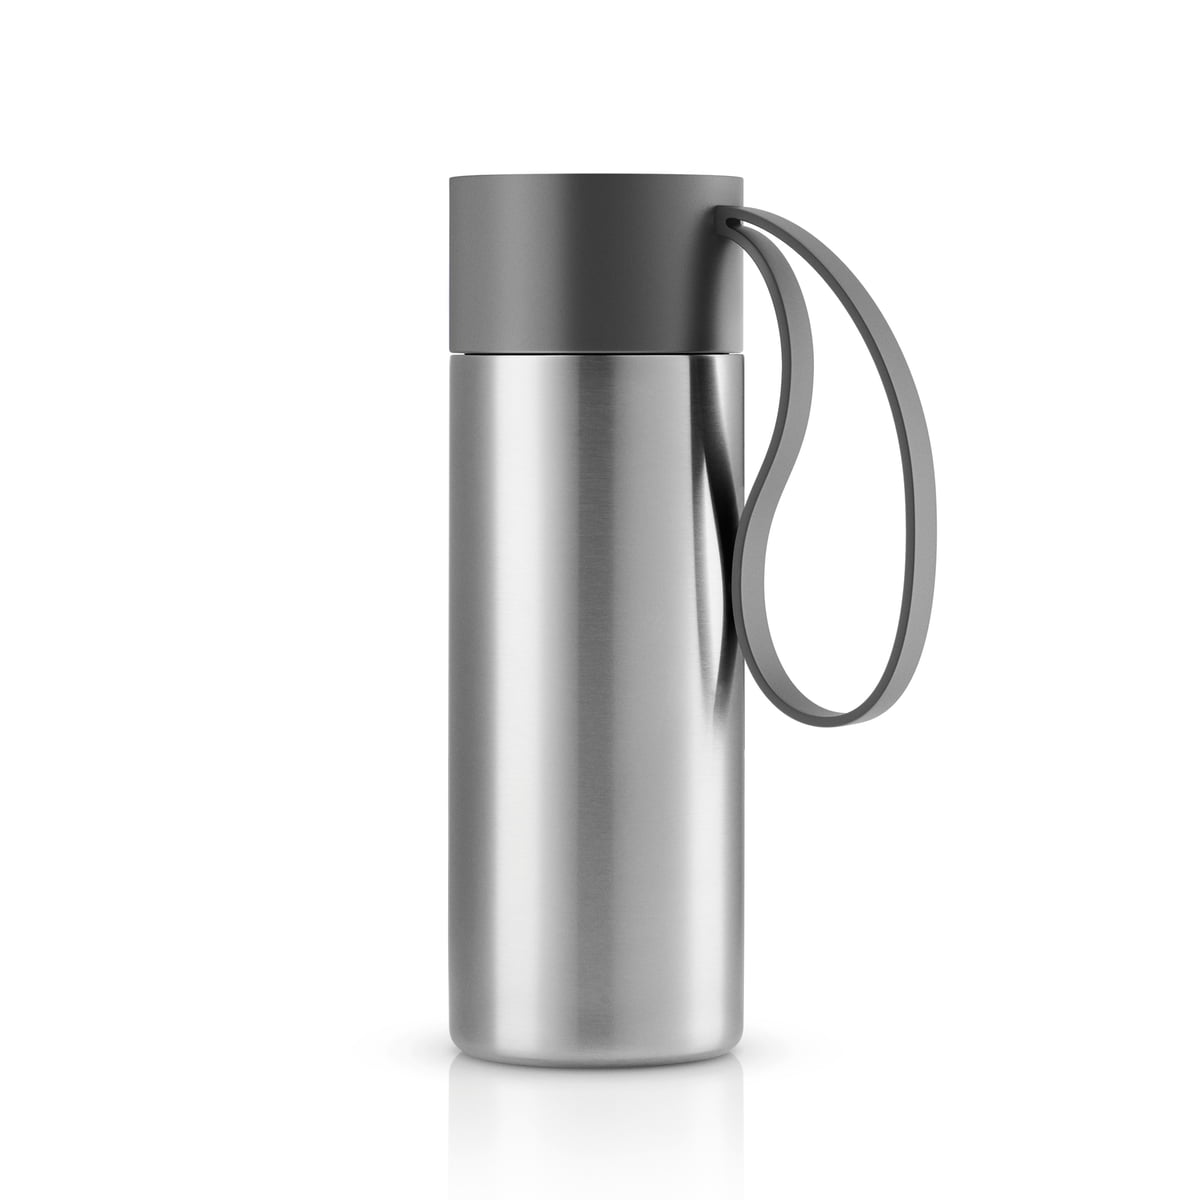 How to choose a thermocup Thermocup Review 20